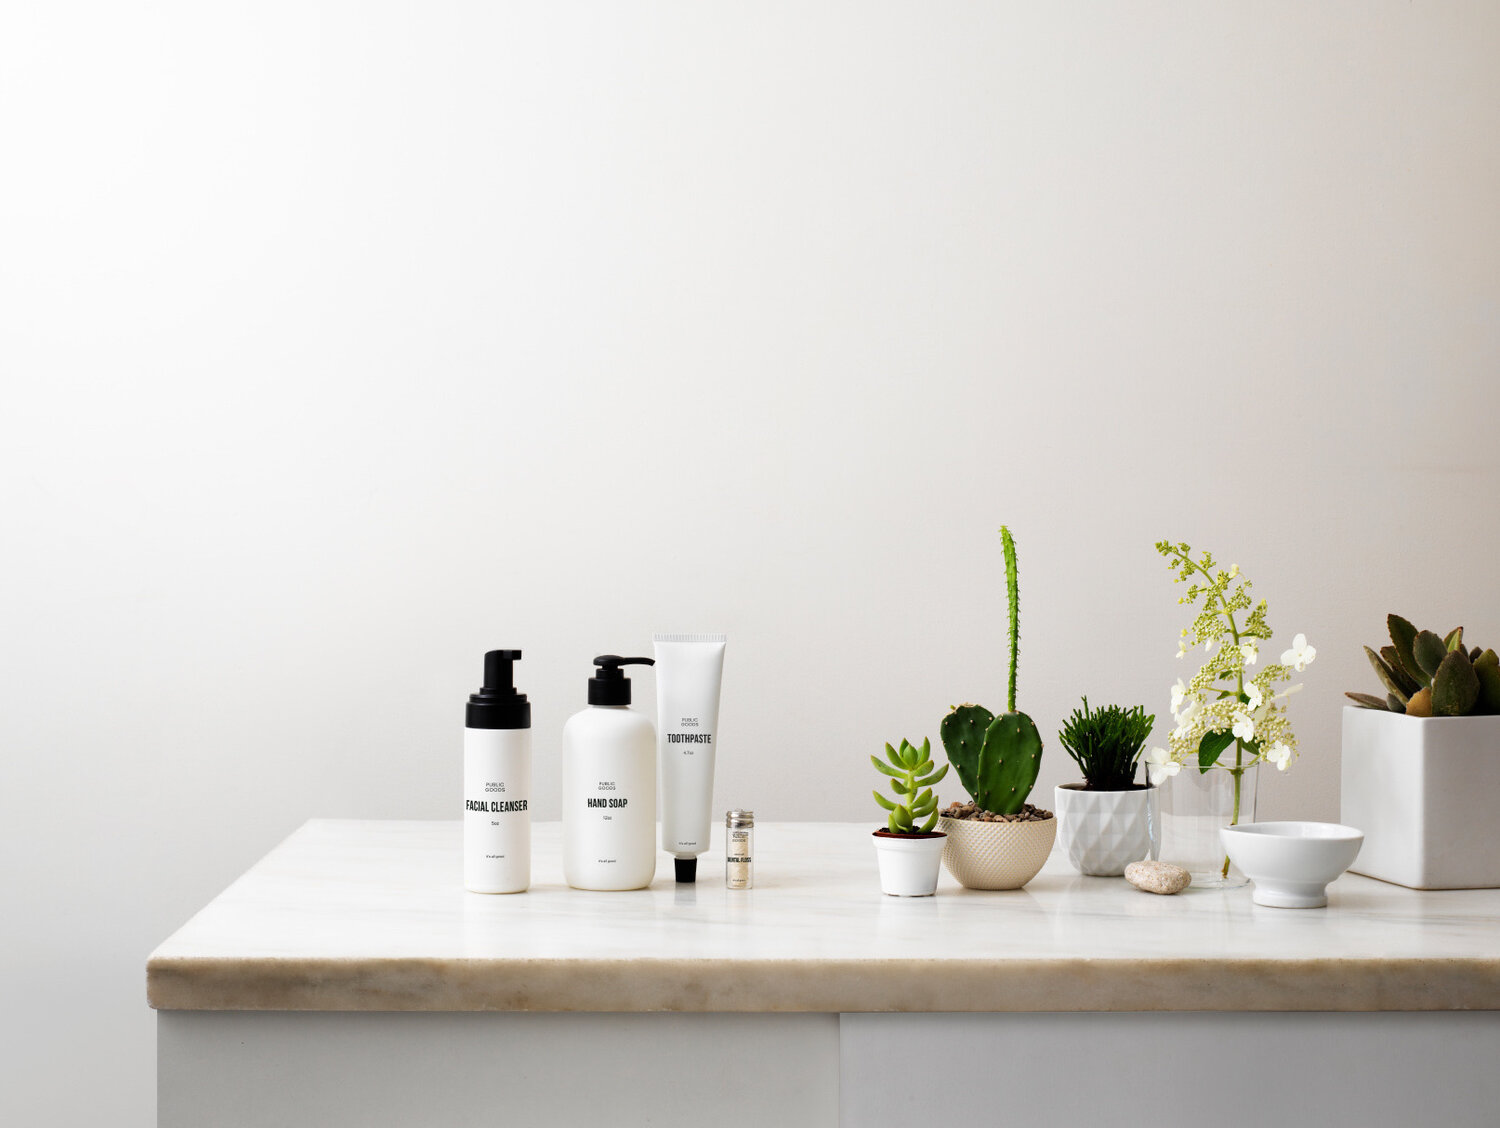 PUBLIC GOODS  — Lifestyle essentials for the modern home. Get 50% off your first purchase by using code: JENNIFERYOUNG